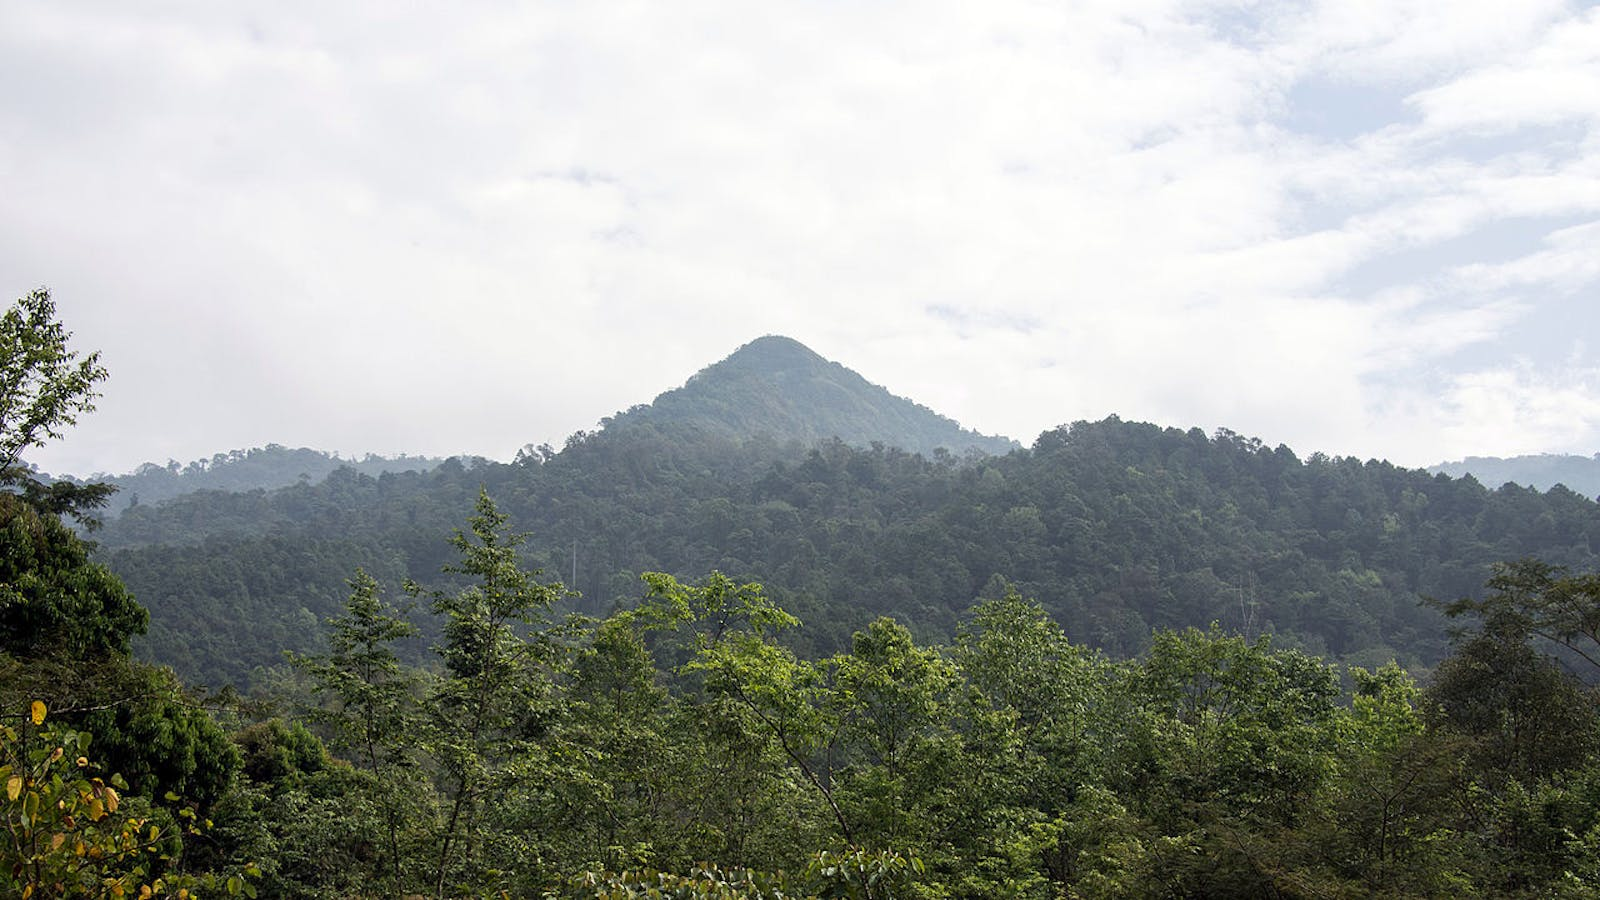 Northern Thailand-Laos Moist Deciduous Forests